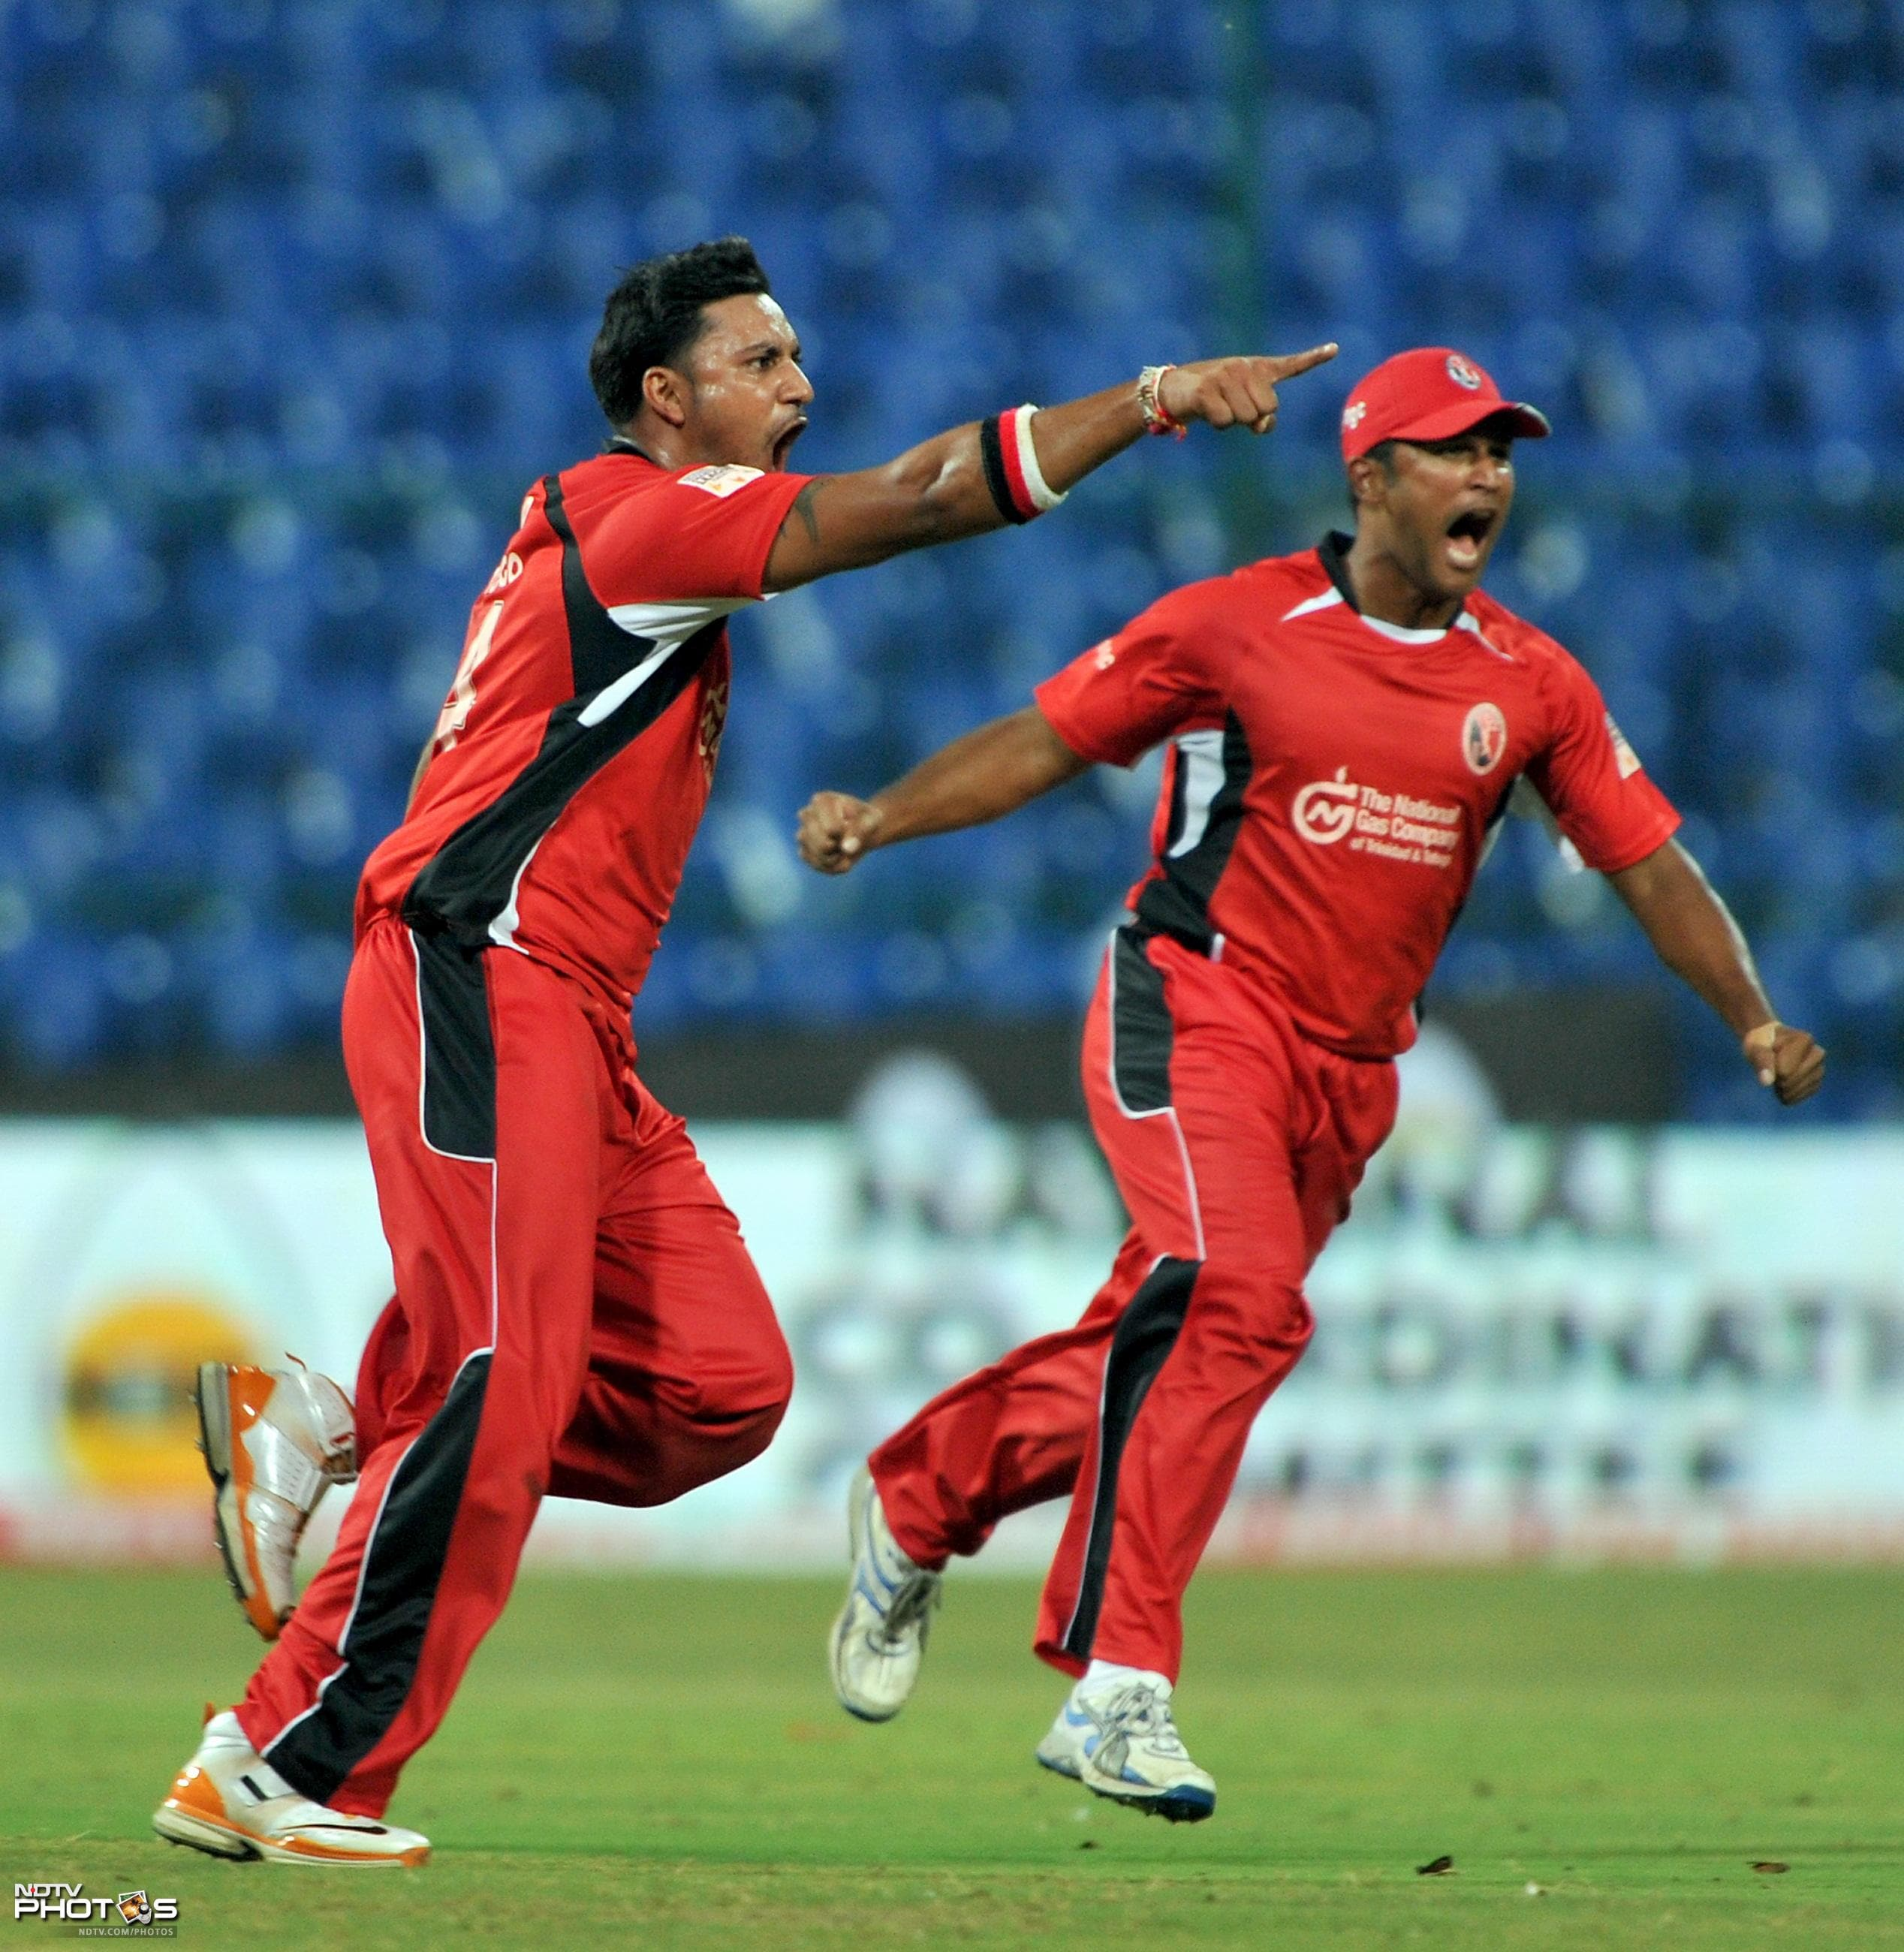 Ravi Rampaul and Darren Ganga celebrate the dismissal of Andrew Symonds during the Champions League Twenty20 League Group A match between Mumbai Indians and Trinidad and Tobago at the M. Chinnaswamy Stadium in Bangalore. (AFP Photo)